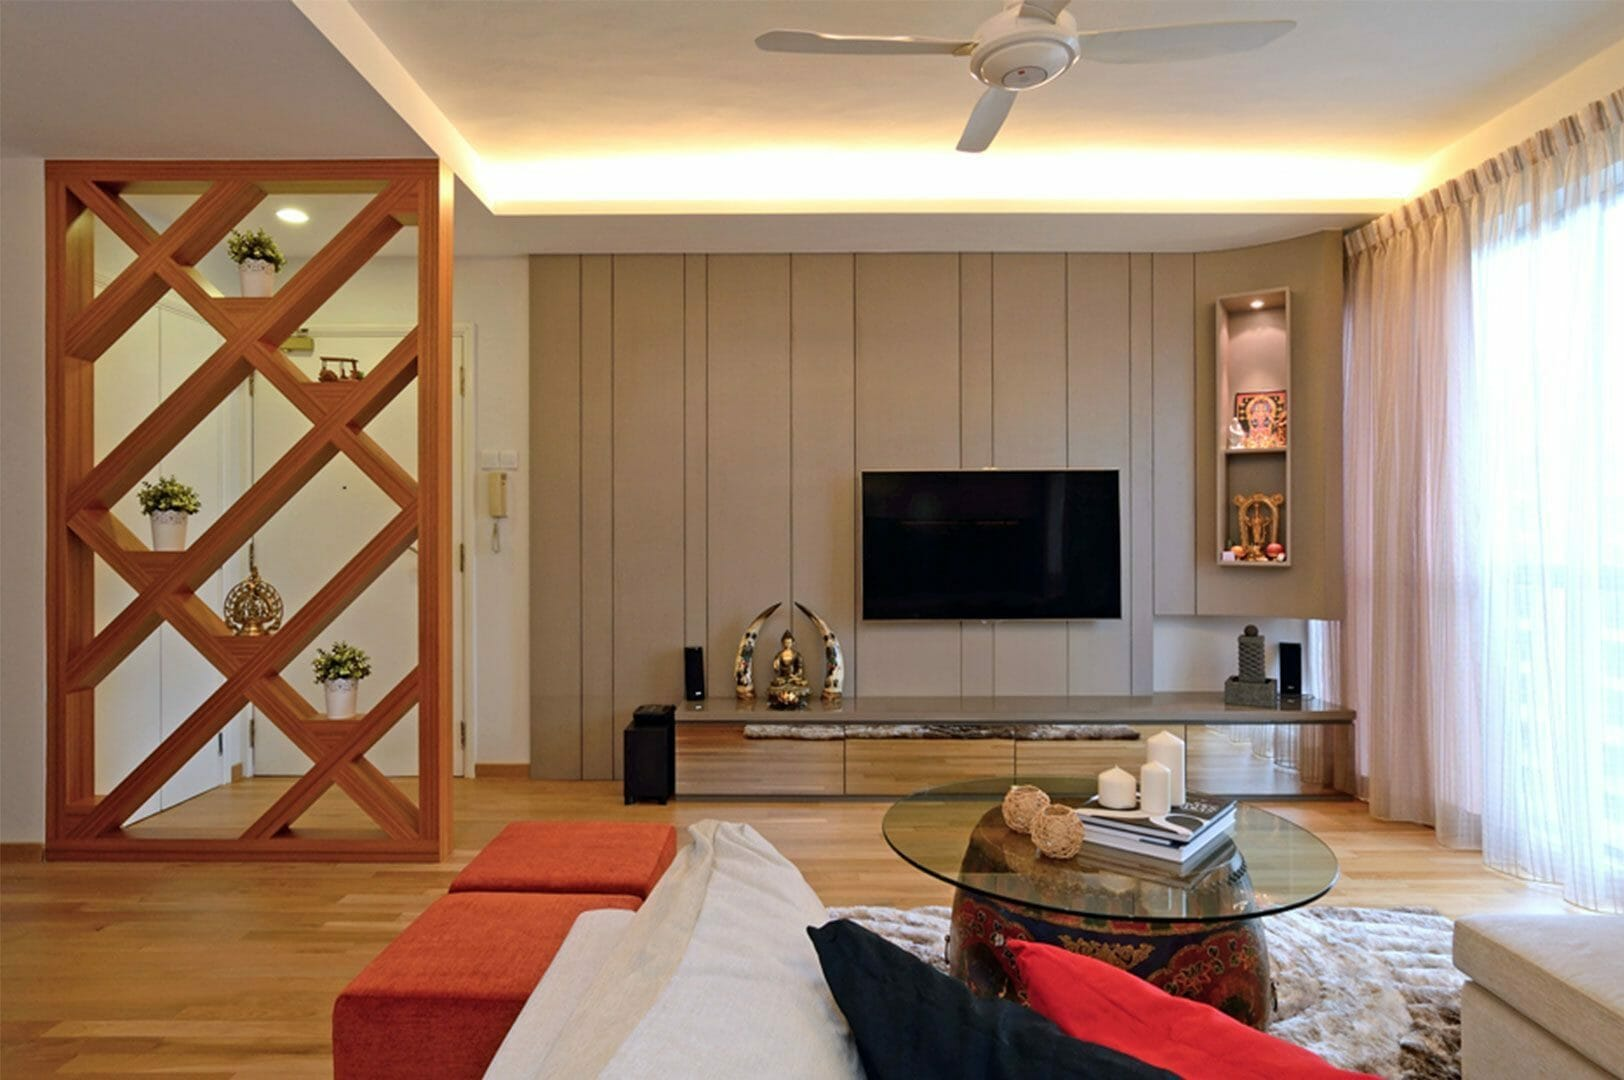 Top 15 Creative Interior Design for Indian Homes